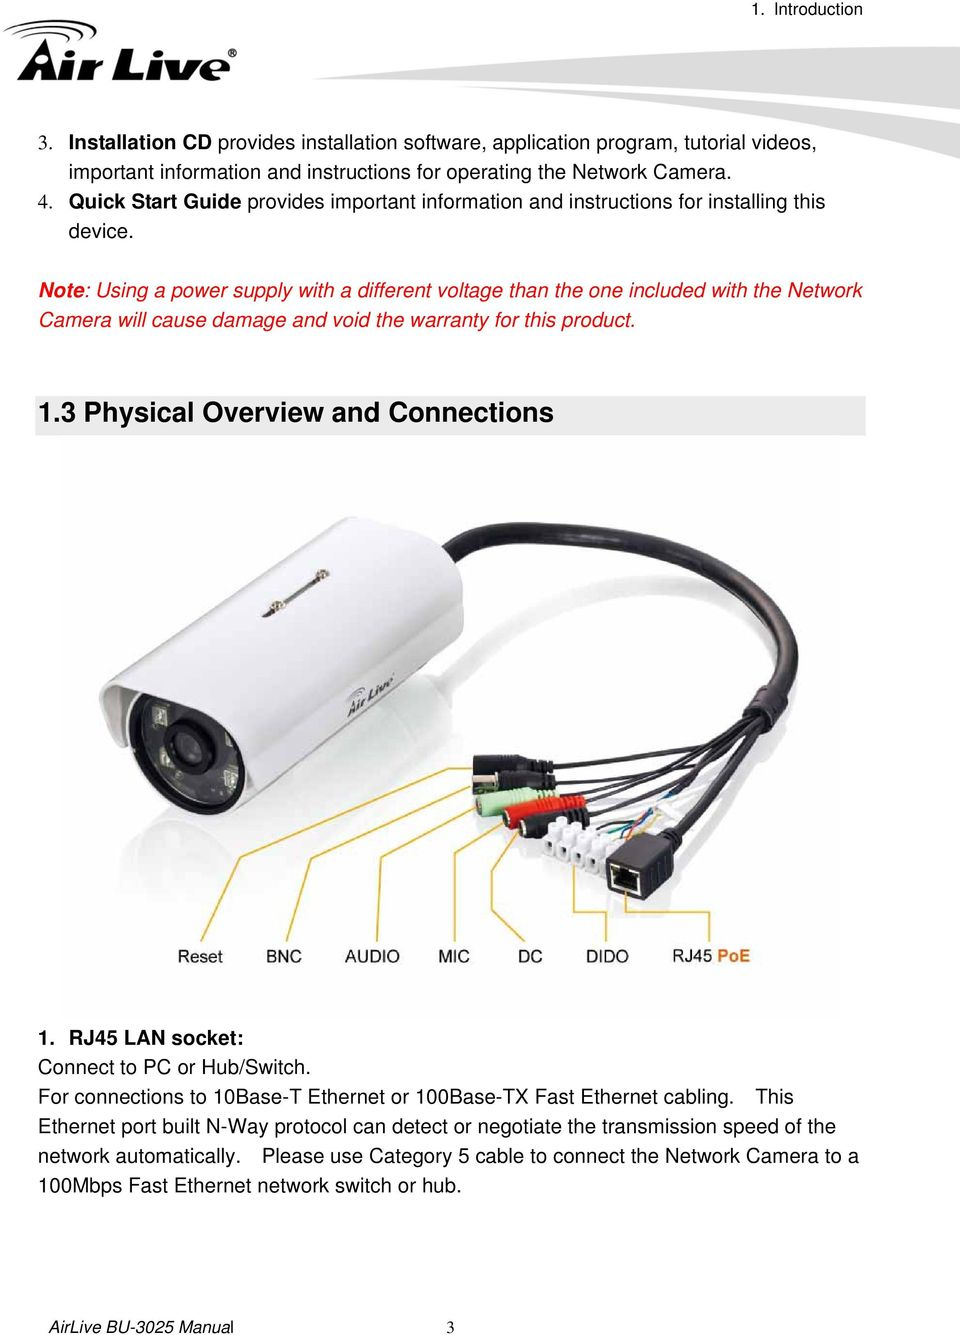 Note: Using a power supply with a different voltage than the one included with the Network Camera will cause damage and void the warranty for this product. 1.3 Physical Overview and Connections 1.